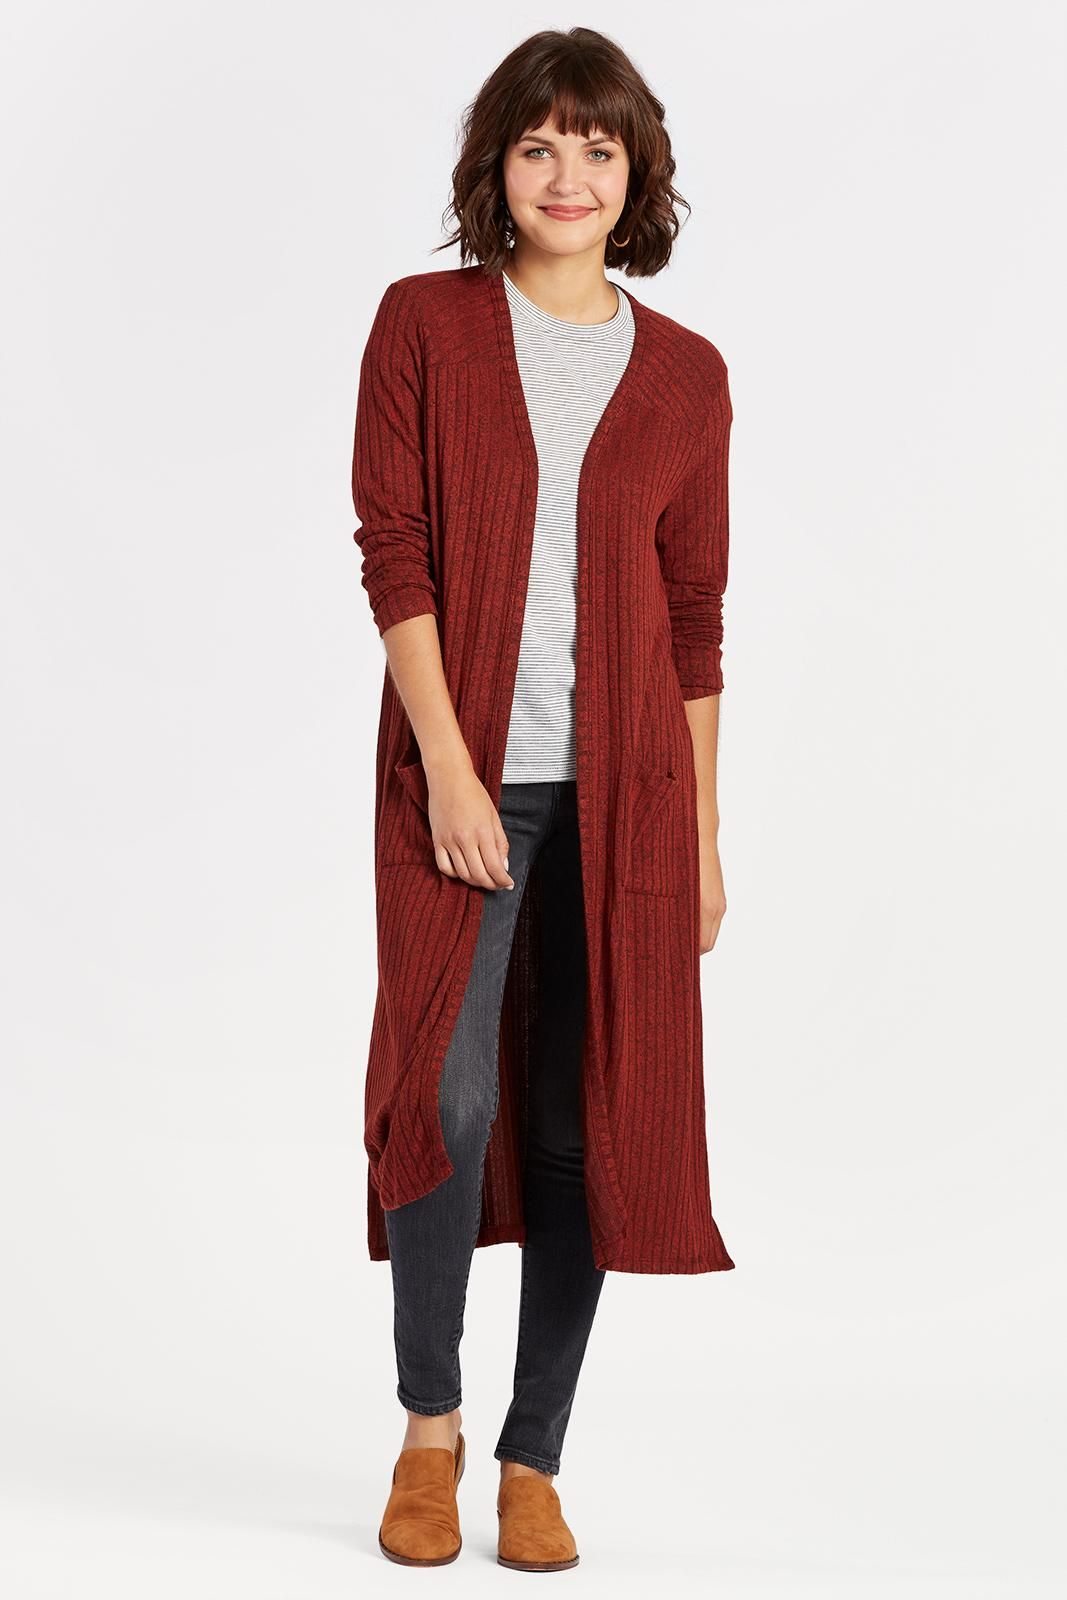 BRAEVE Ribbed Duster Cardigan | Dusters, Fashion fall and Fall winter